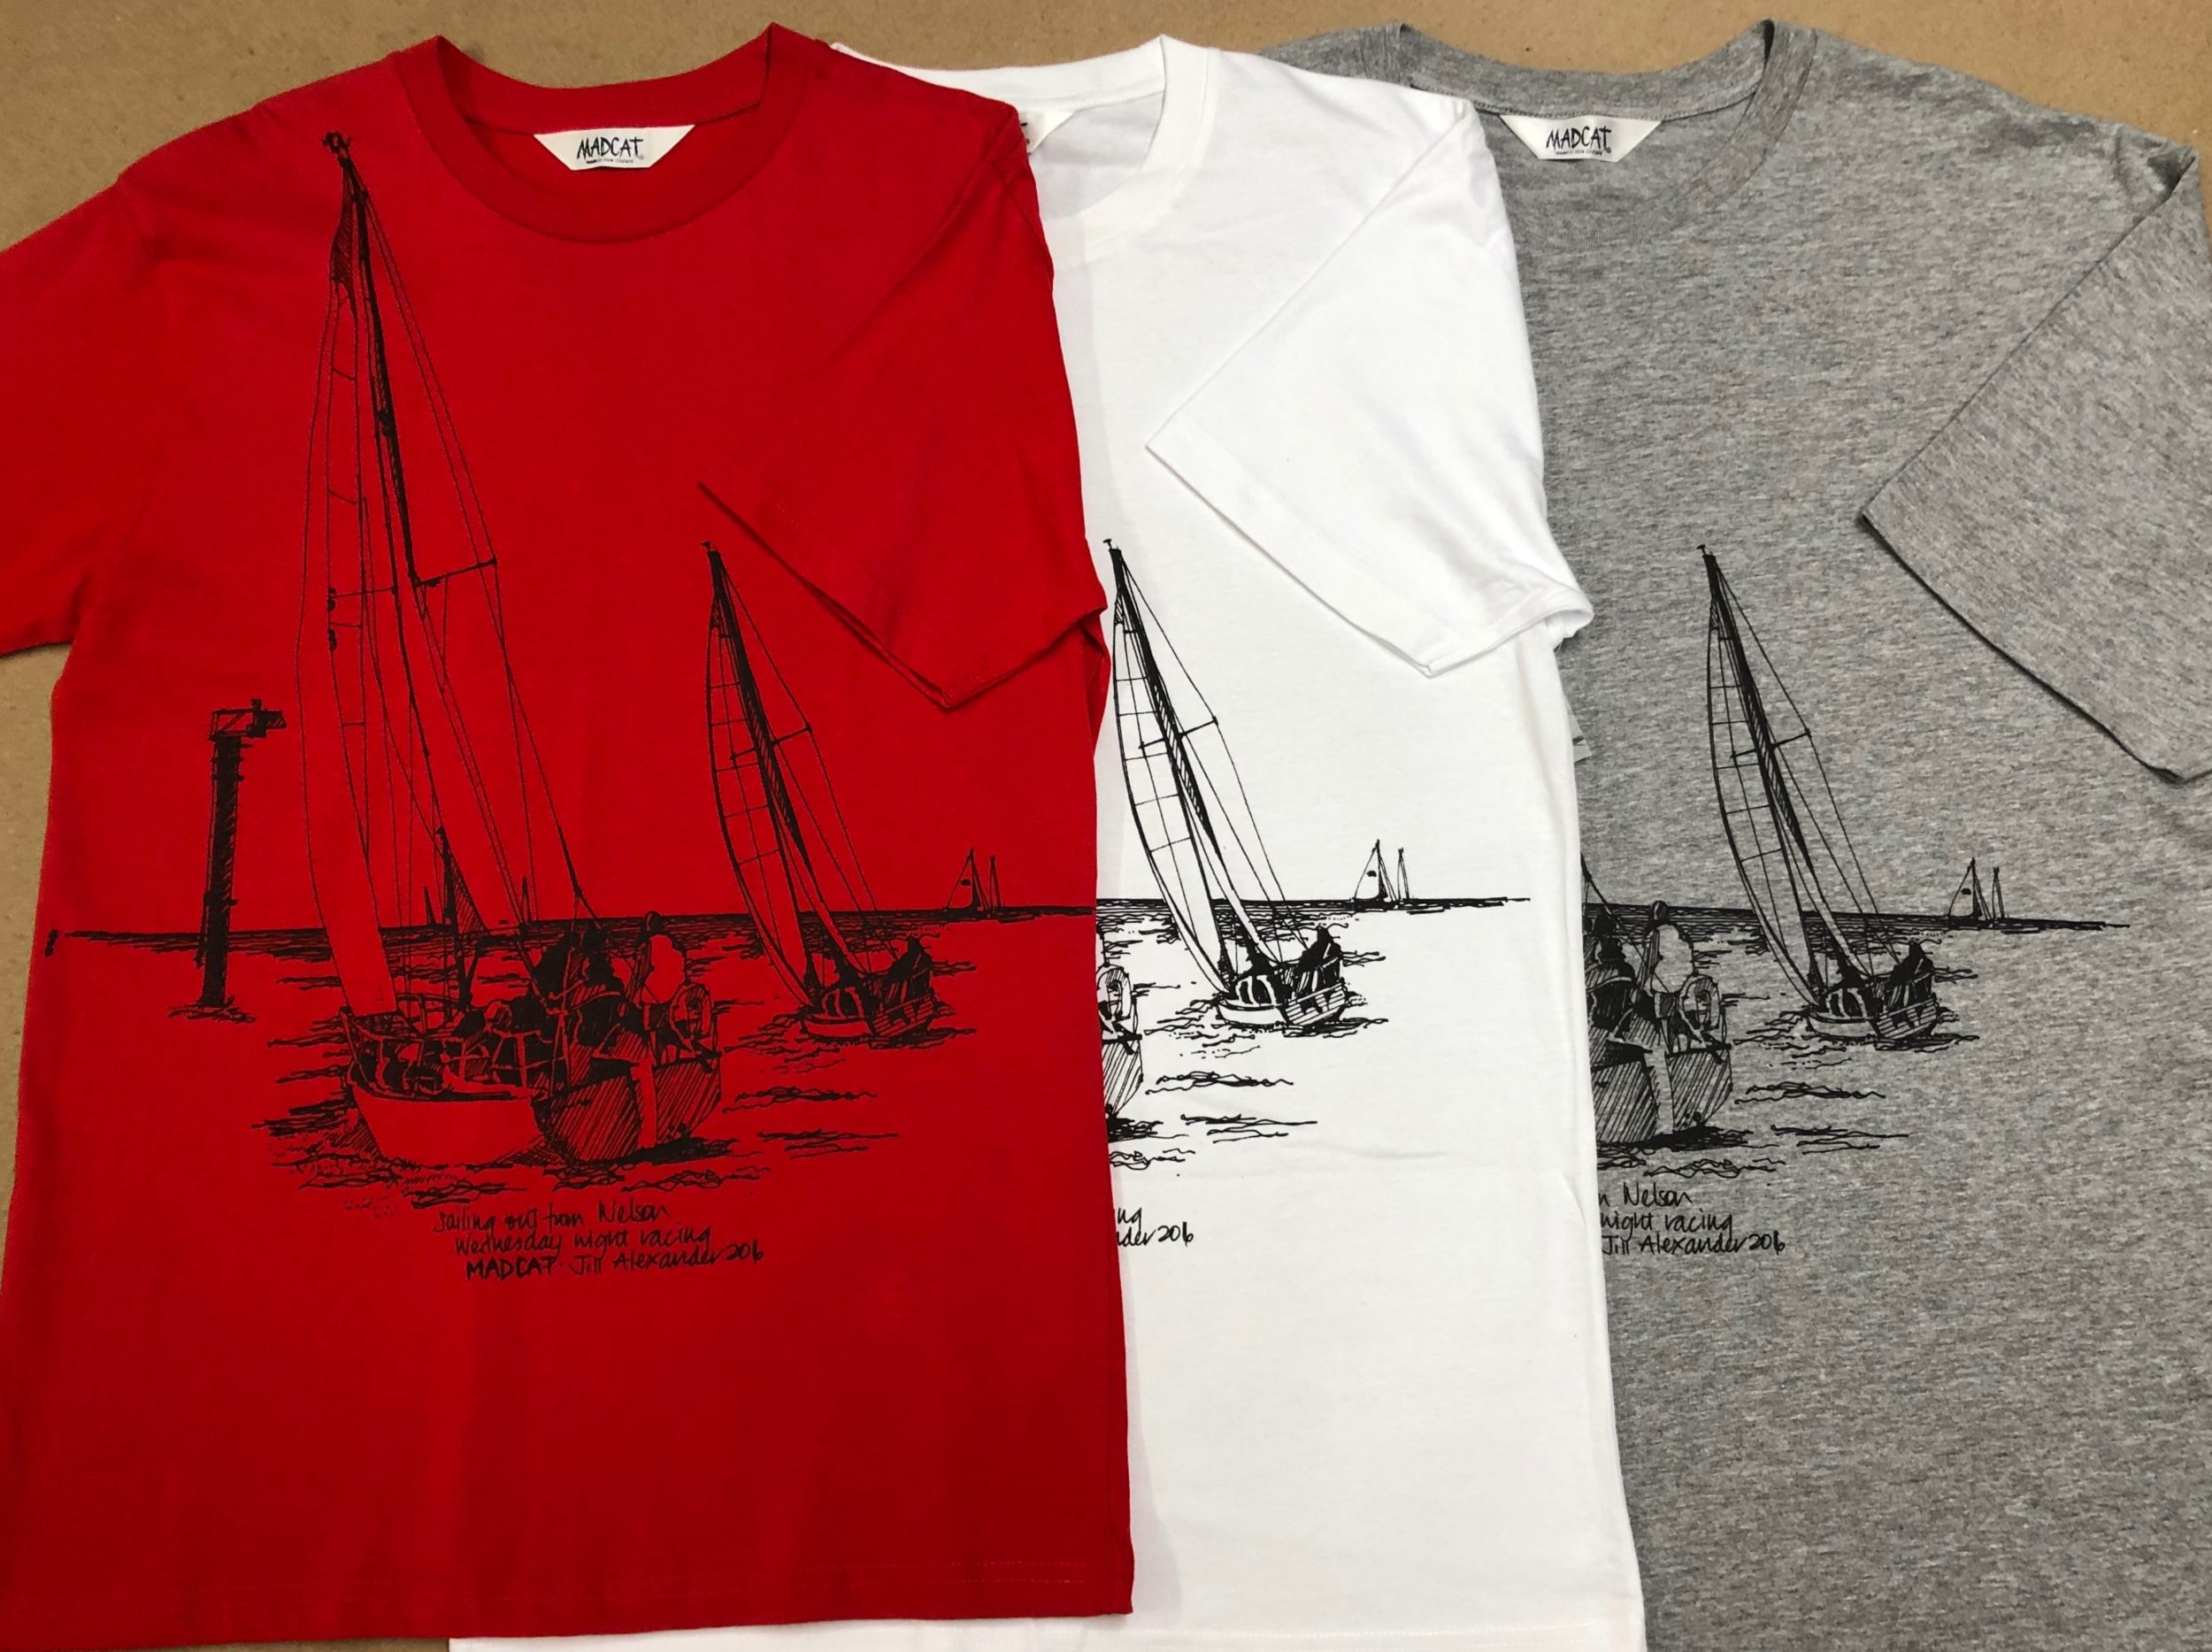 Sailing boat T shirt in red, white and grey marl.